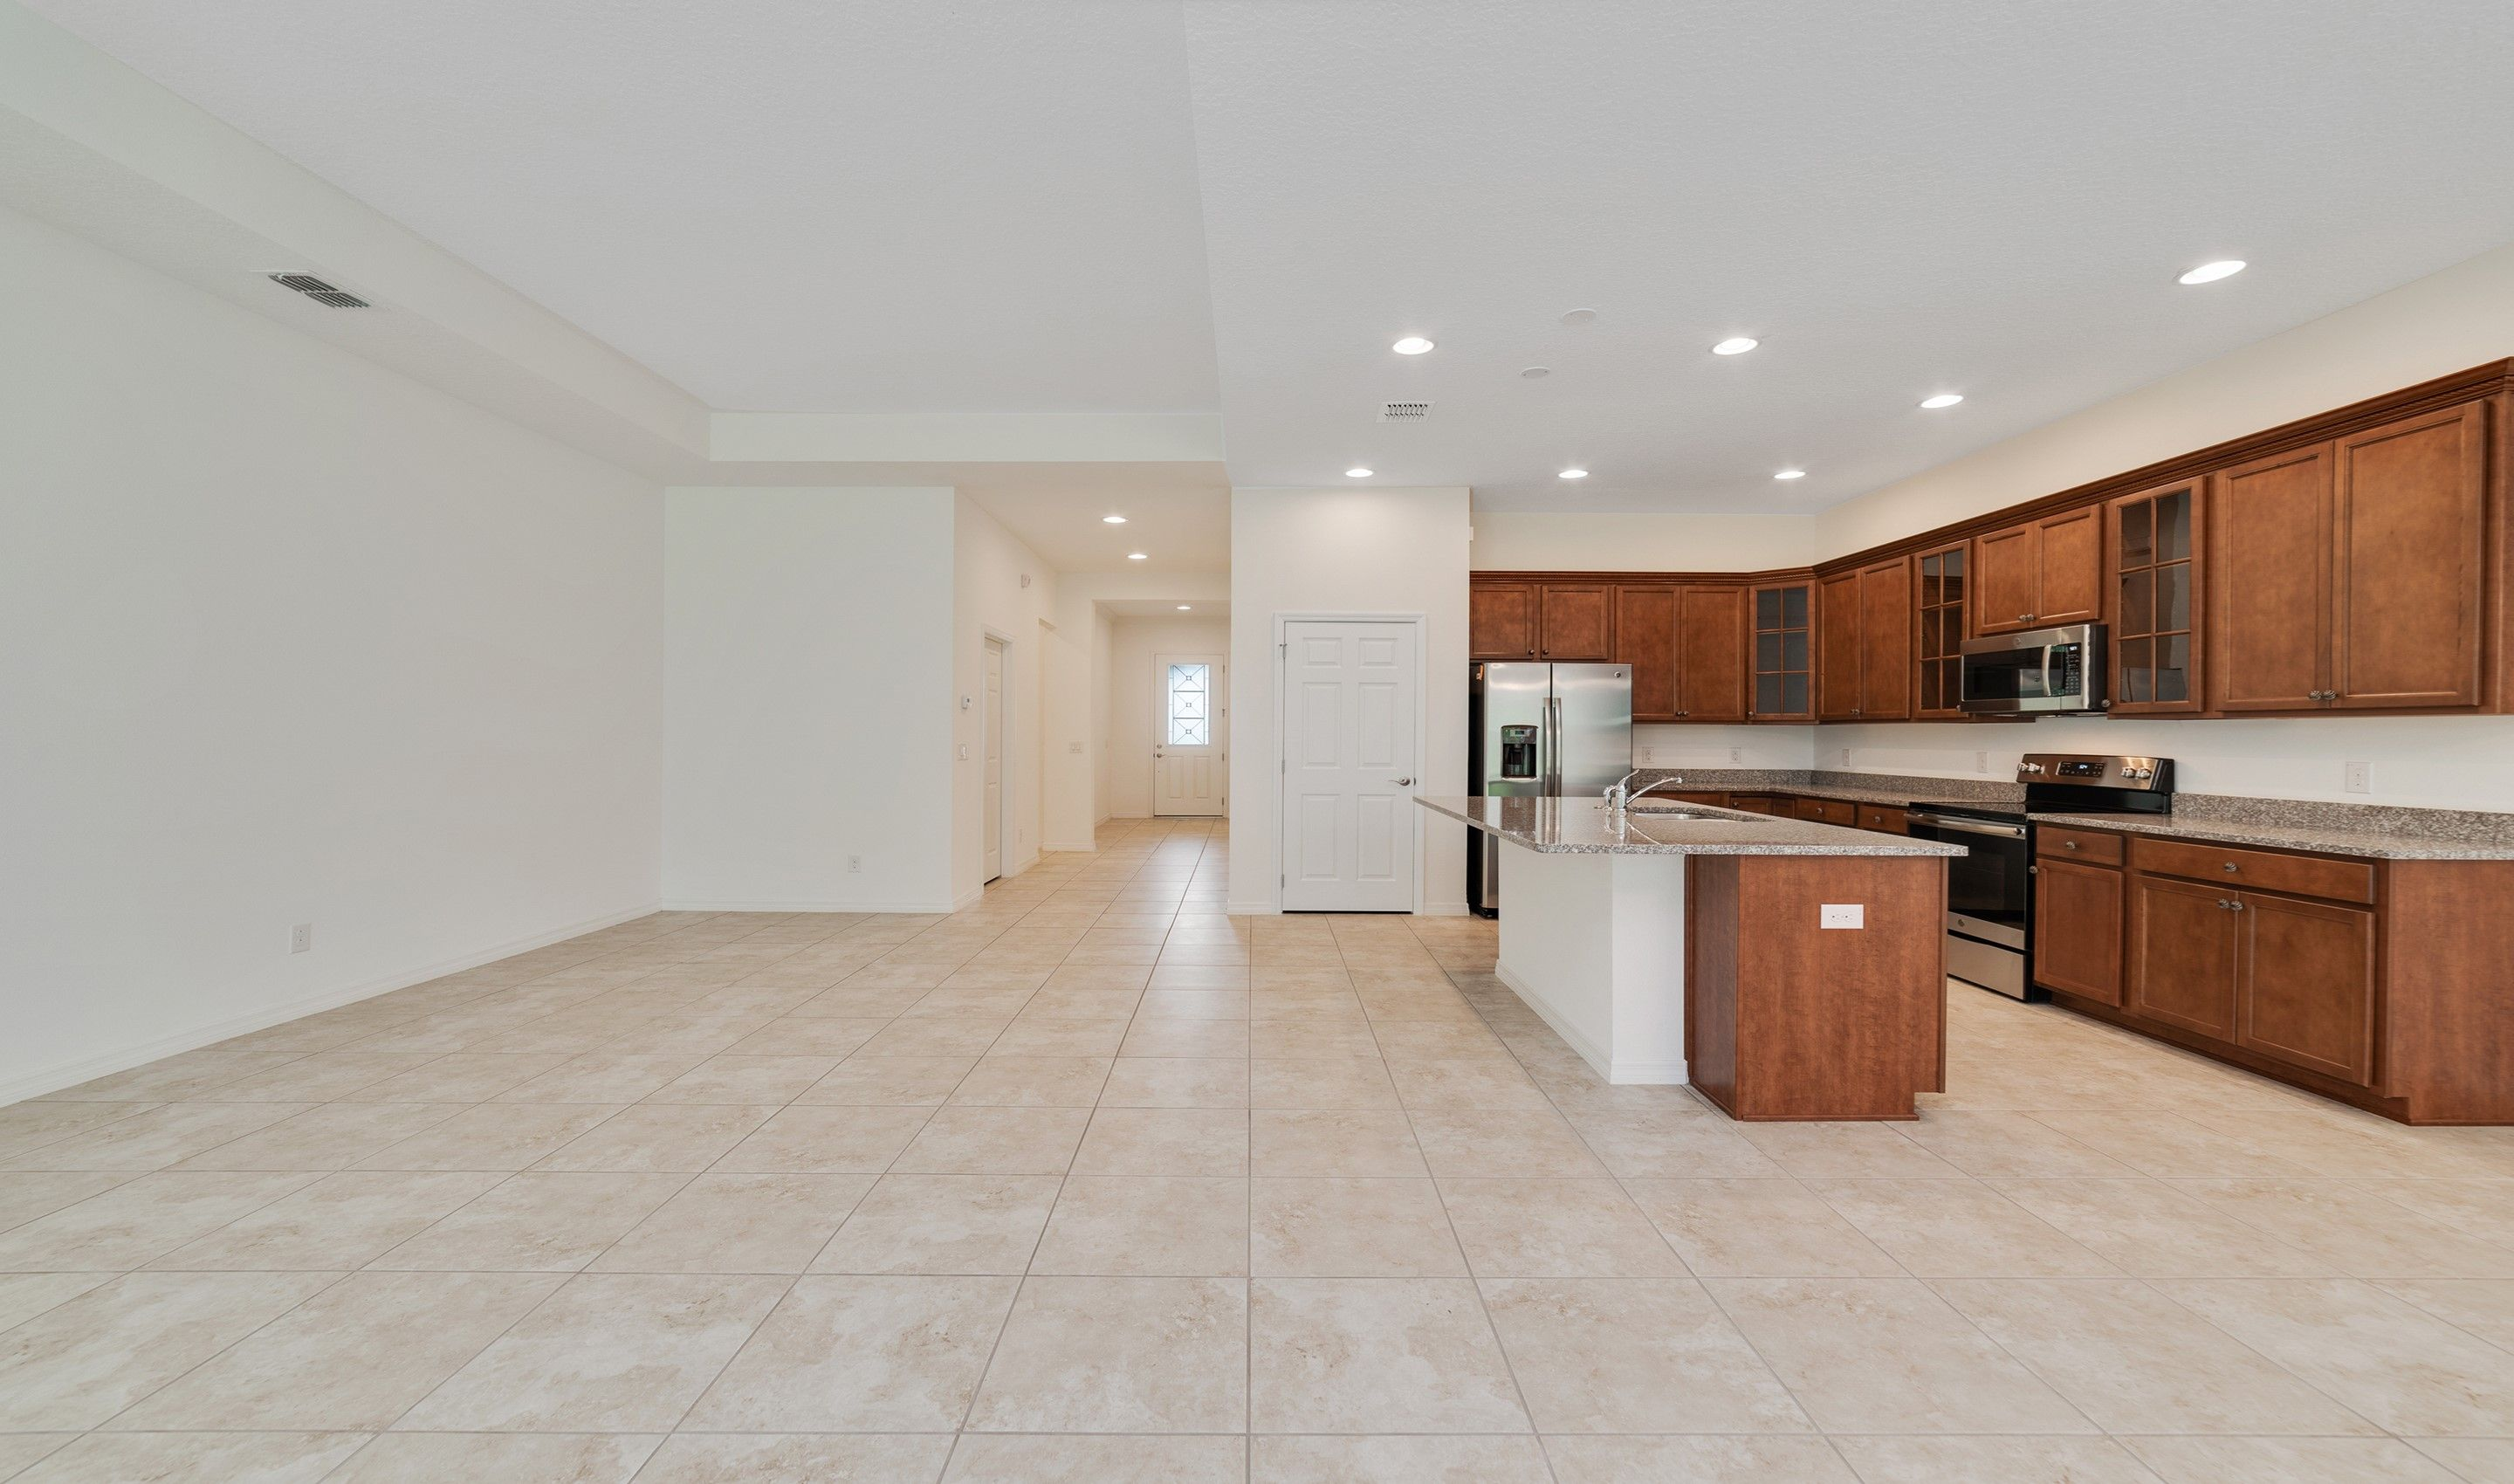 Kitchen-in-San Andres-at-Hilltop Reserve-in-Apopka